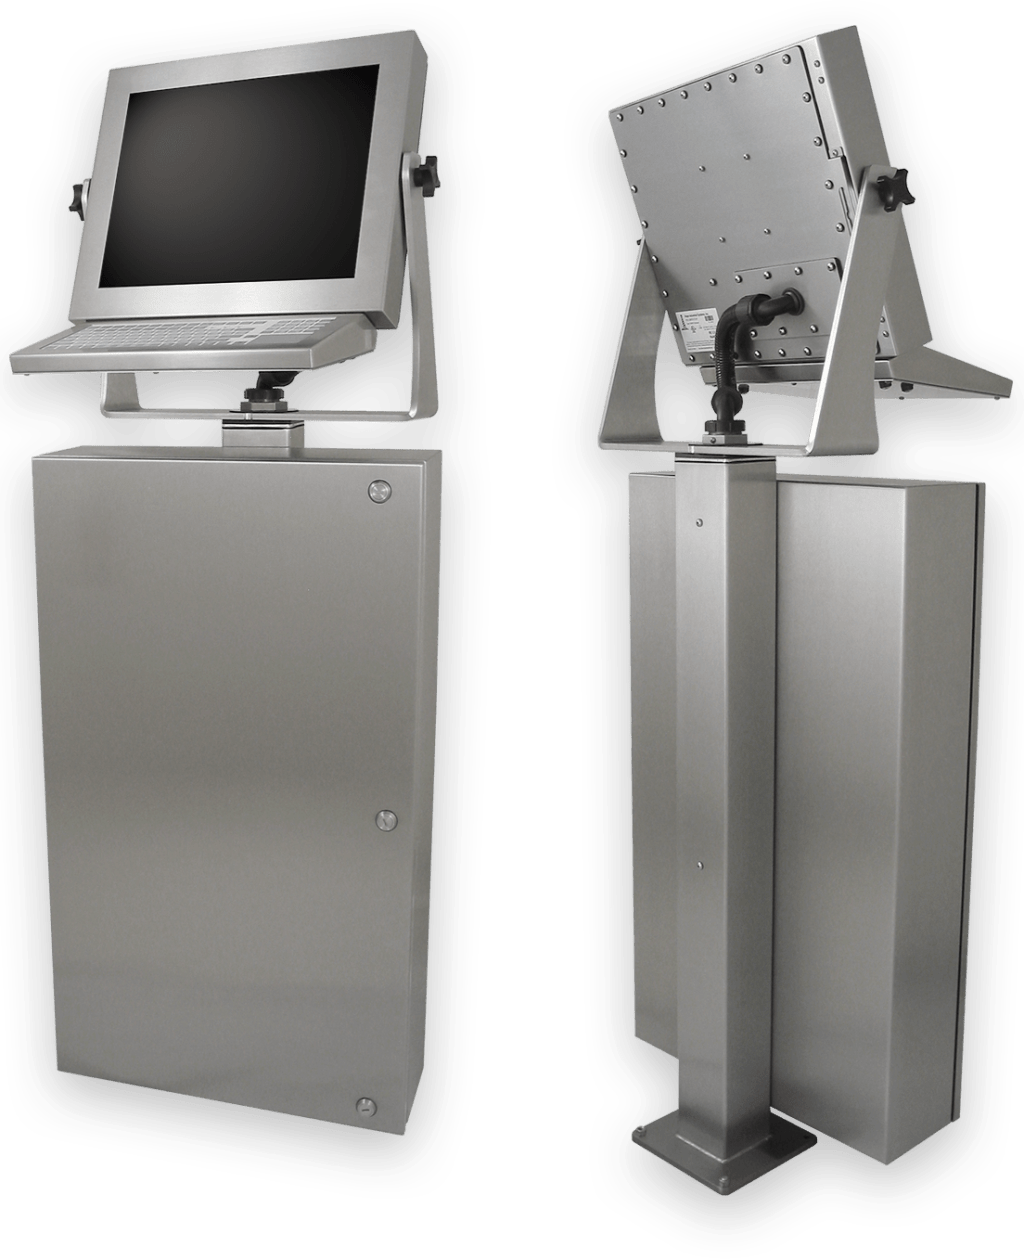 Industrial IP65/IP66 Touch Screen Workstations for the Factory Floor